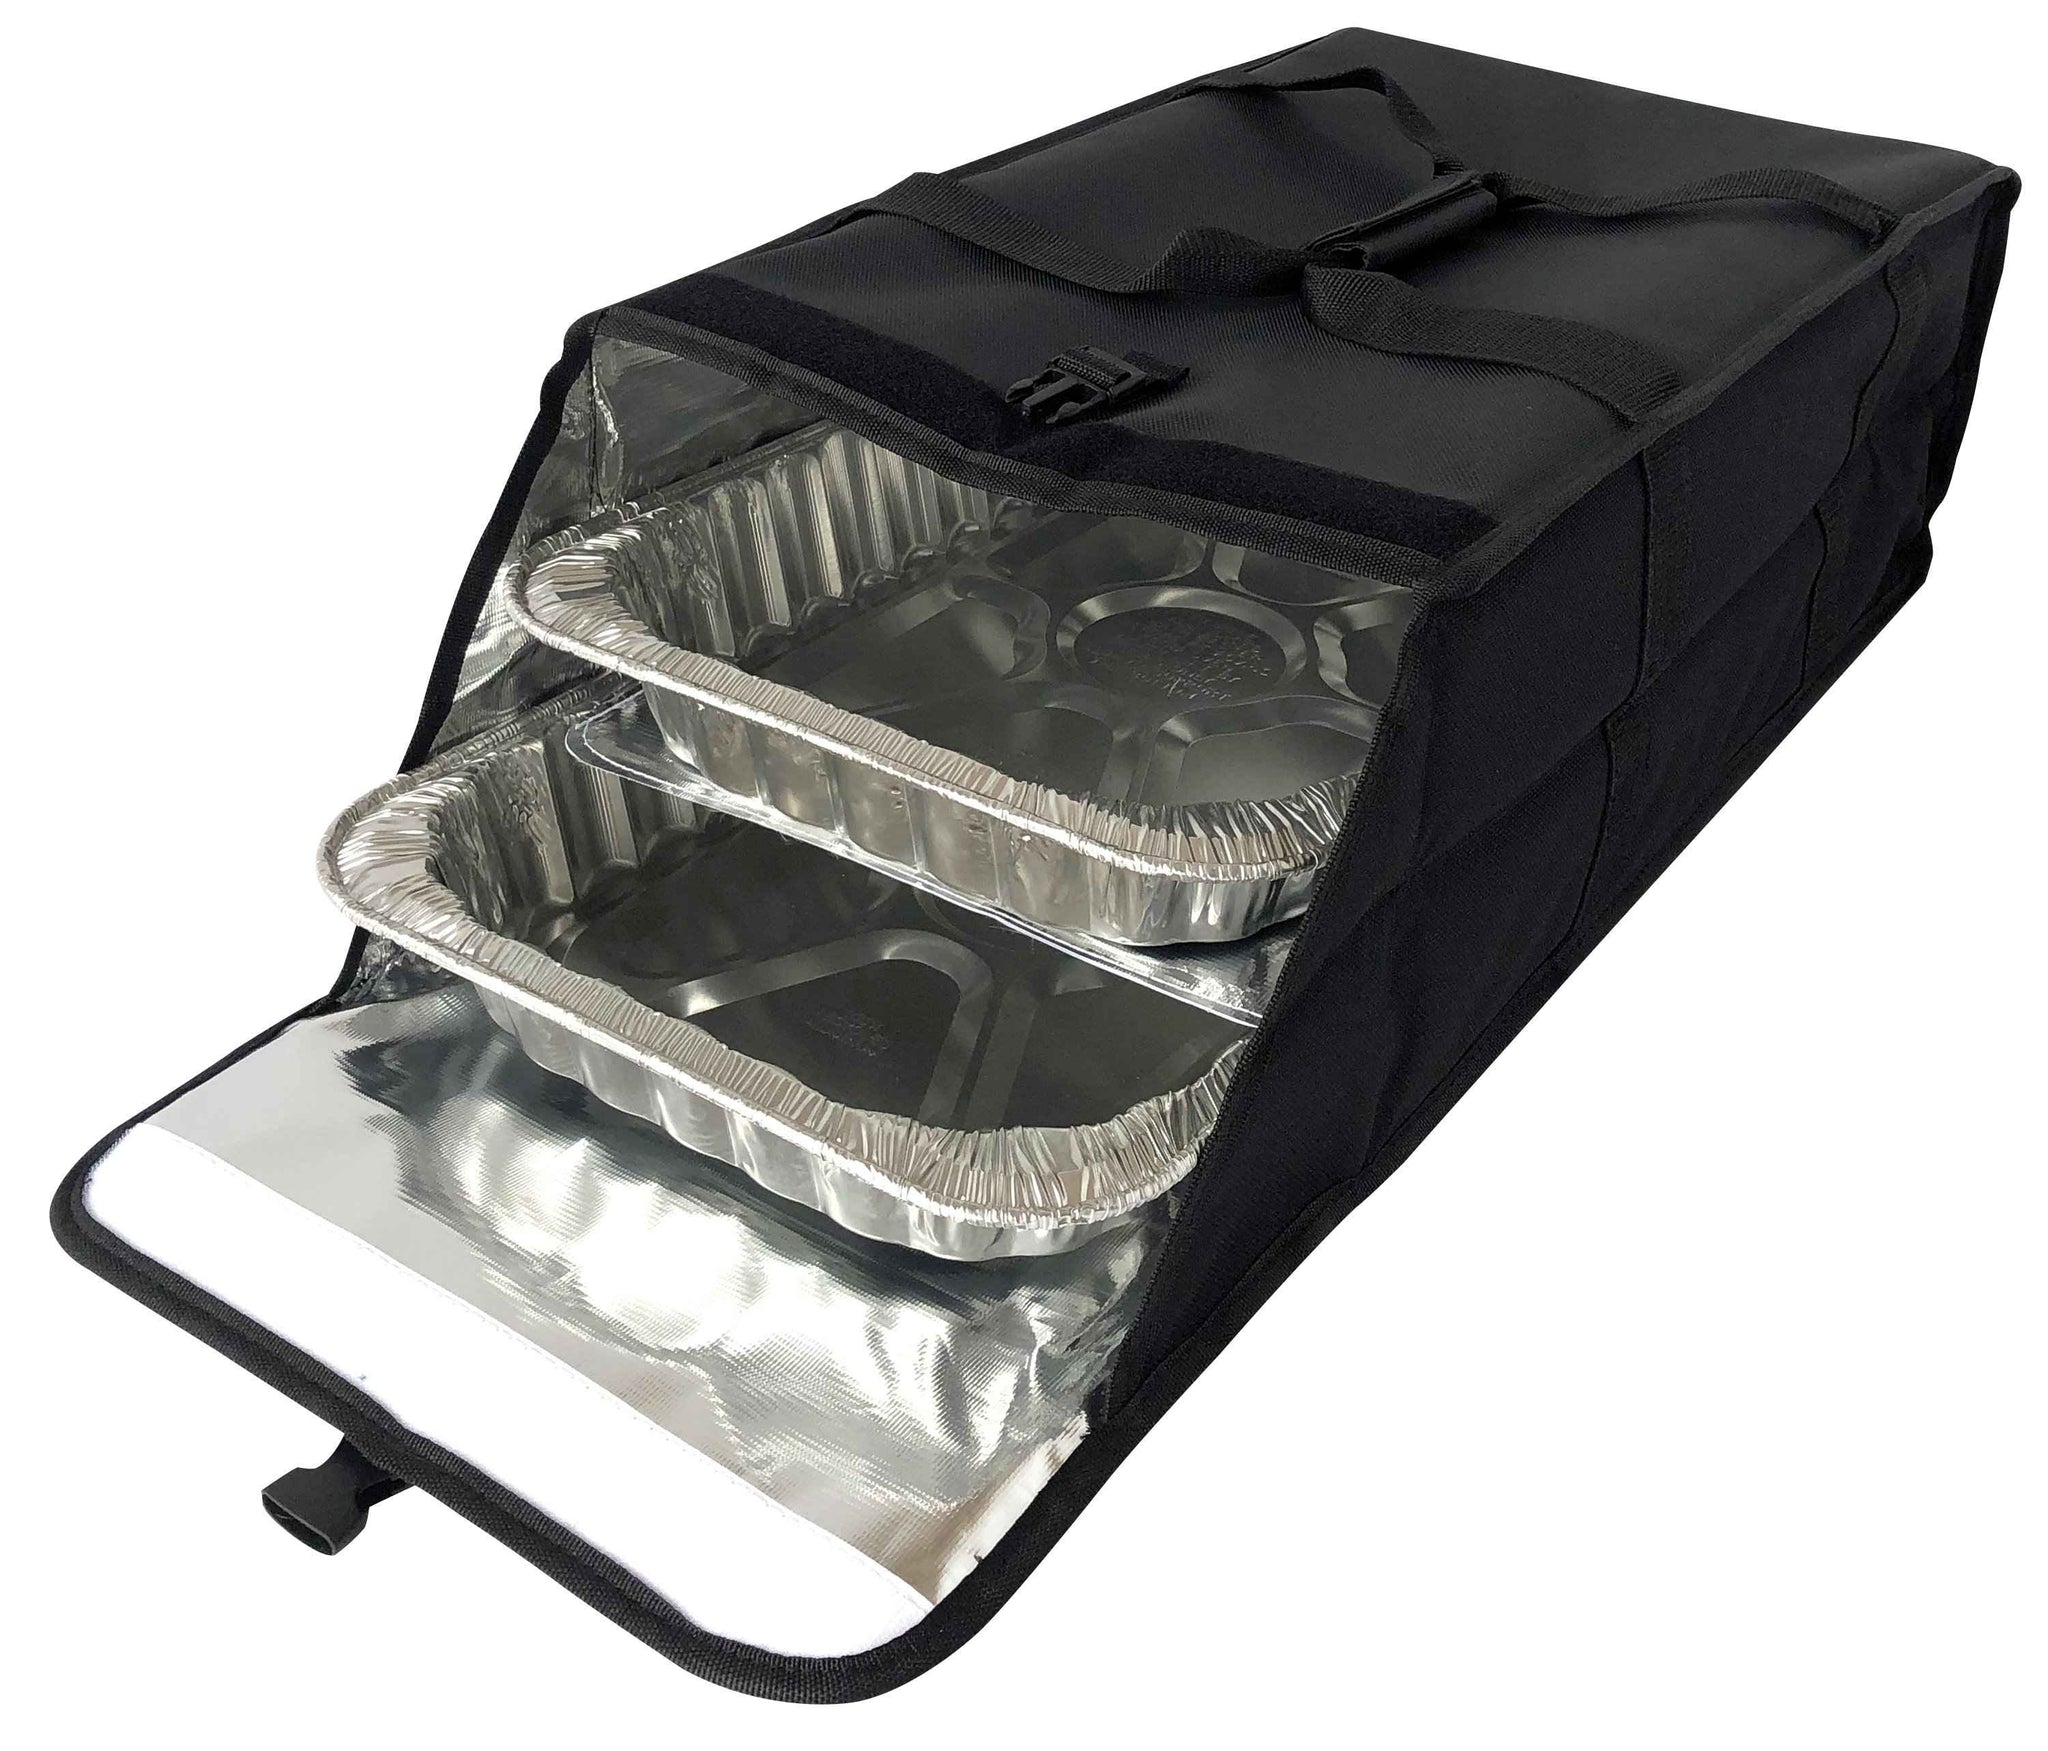 "Medium Full Pan Bag - 22""x13.5""x8.5"""